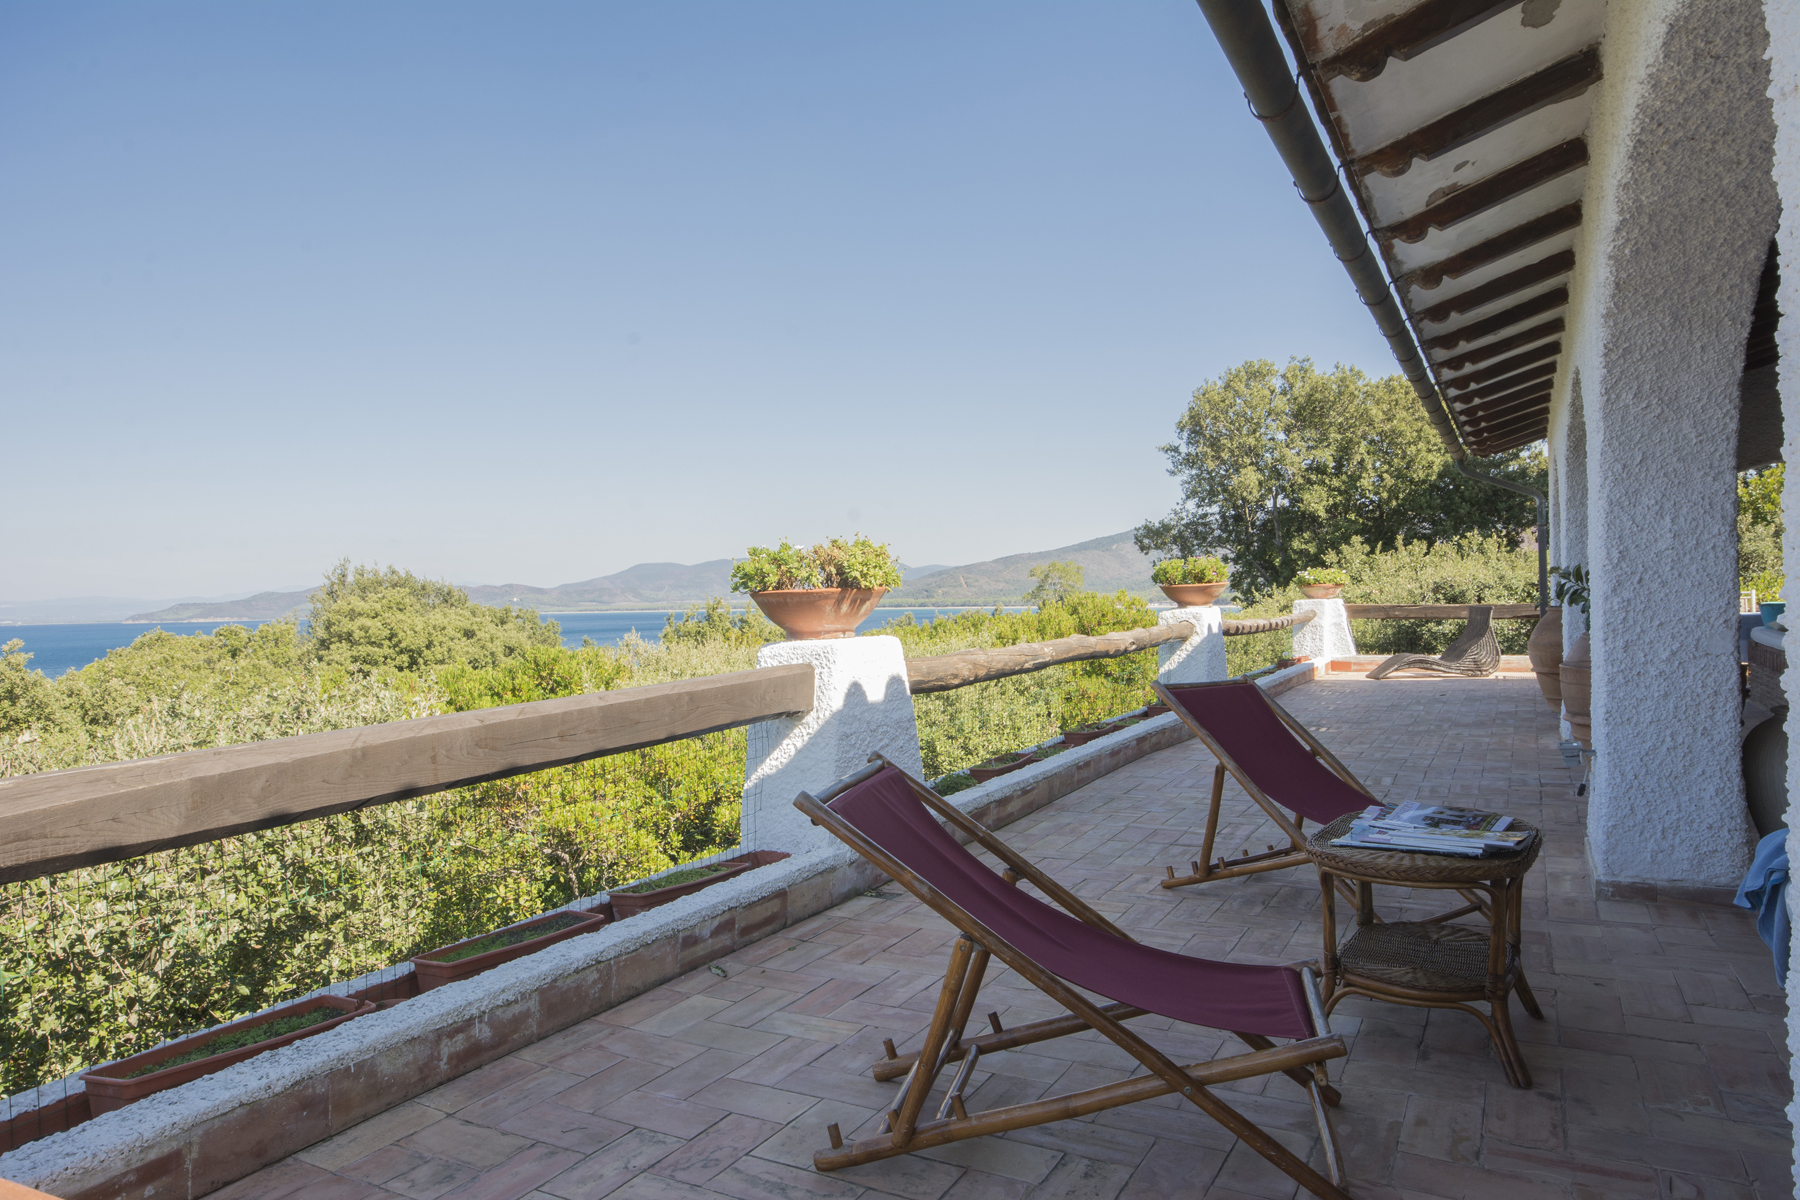 Single Family Home for Sale at Charming Villa with breathtaking view of the sea Punta Ala, Italy